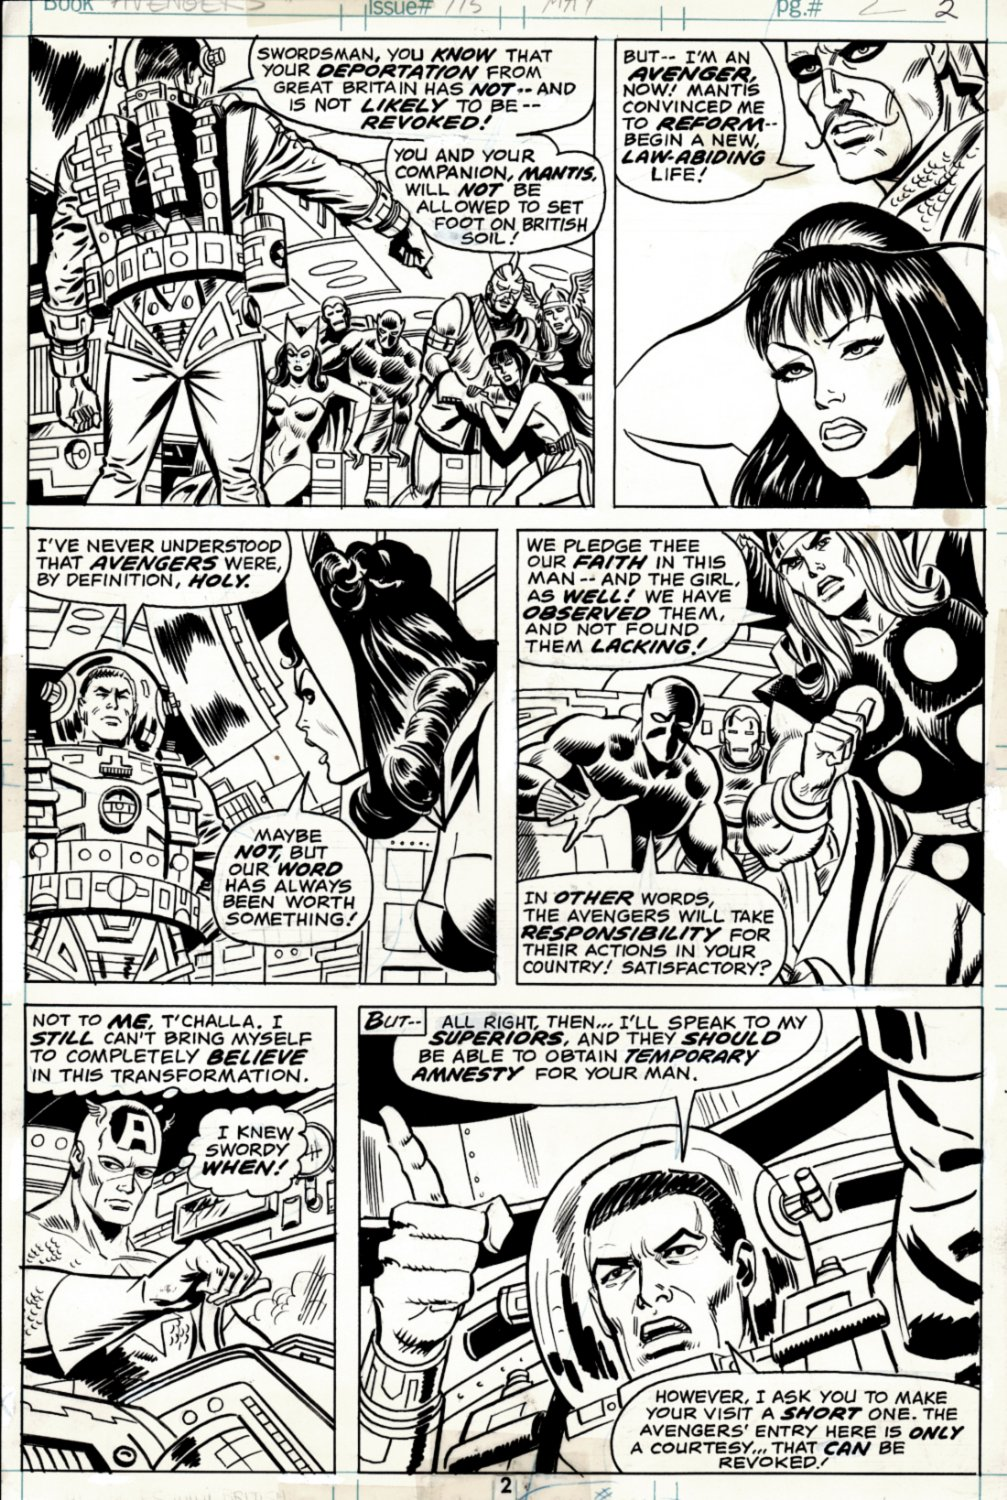 Avengers #115 p 2 (SOLD LIVE ON 'DUELING DEALERS OF COMIC ART' EPISODE #34 PODCAST ON 9-1-2021(RE-WATCH THIS FUNNY ART SELLING SHOW HERE)